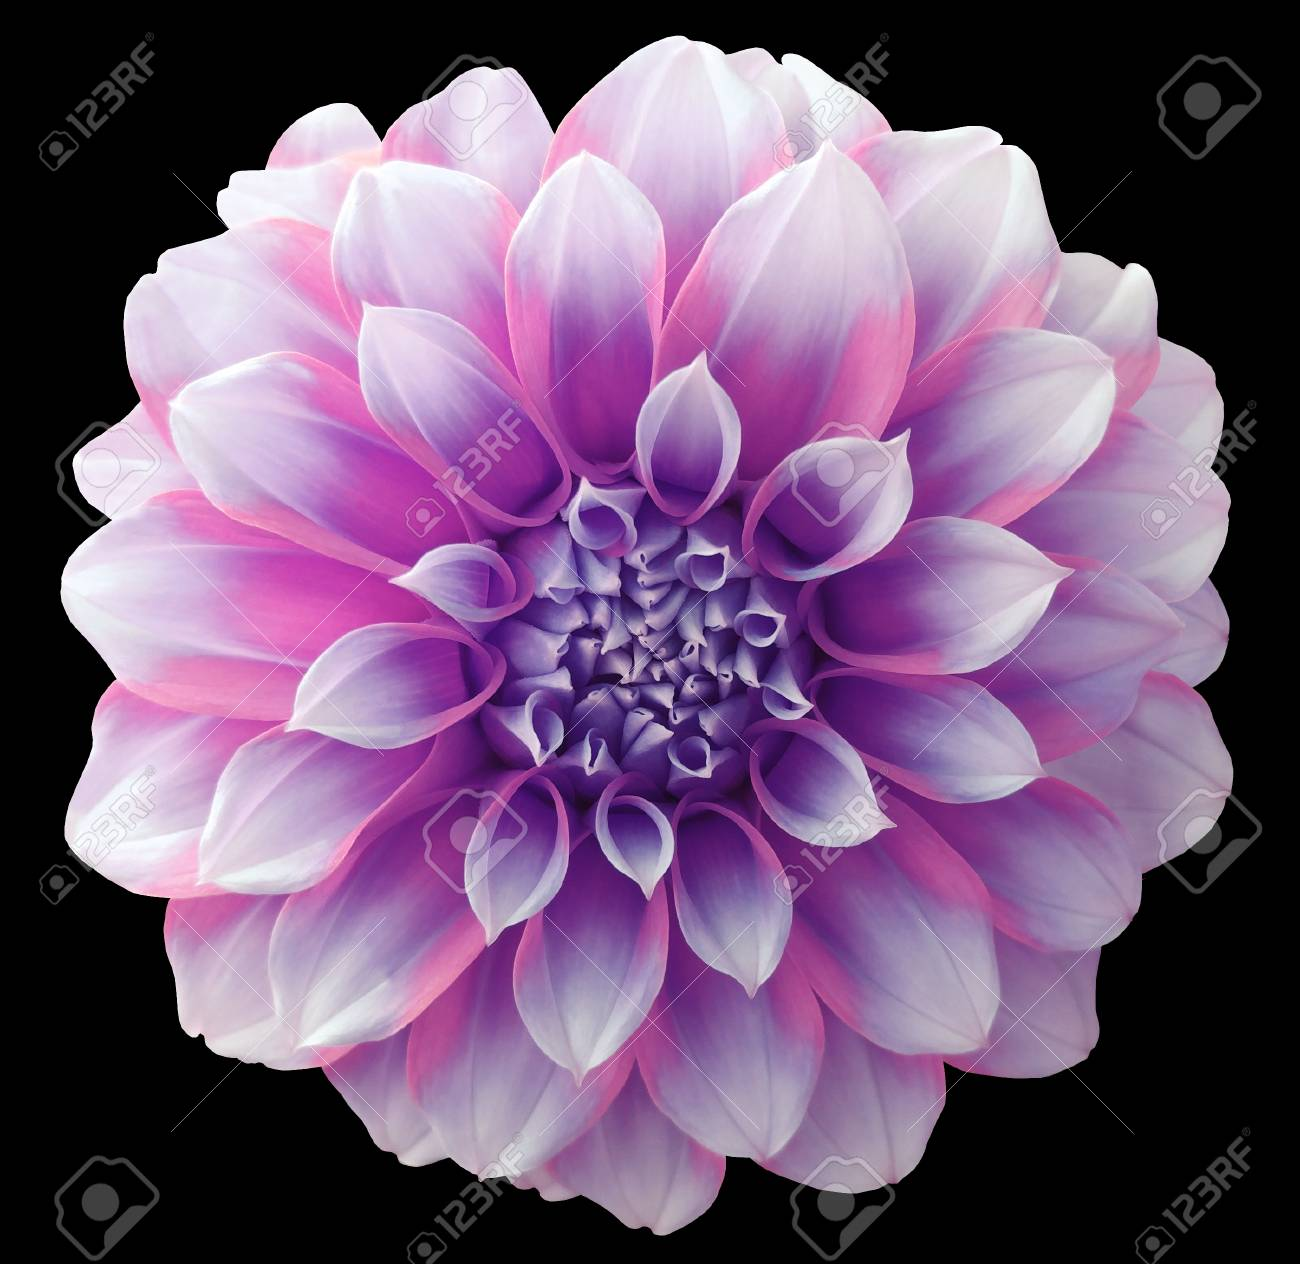 Dahlia Flower Purple Variegated Flower Black Background Isolated Stock Photo Picture And Royalty Free Image Image 65718246